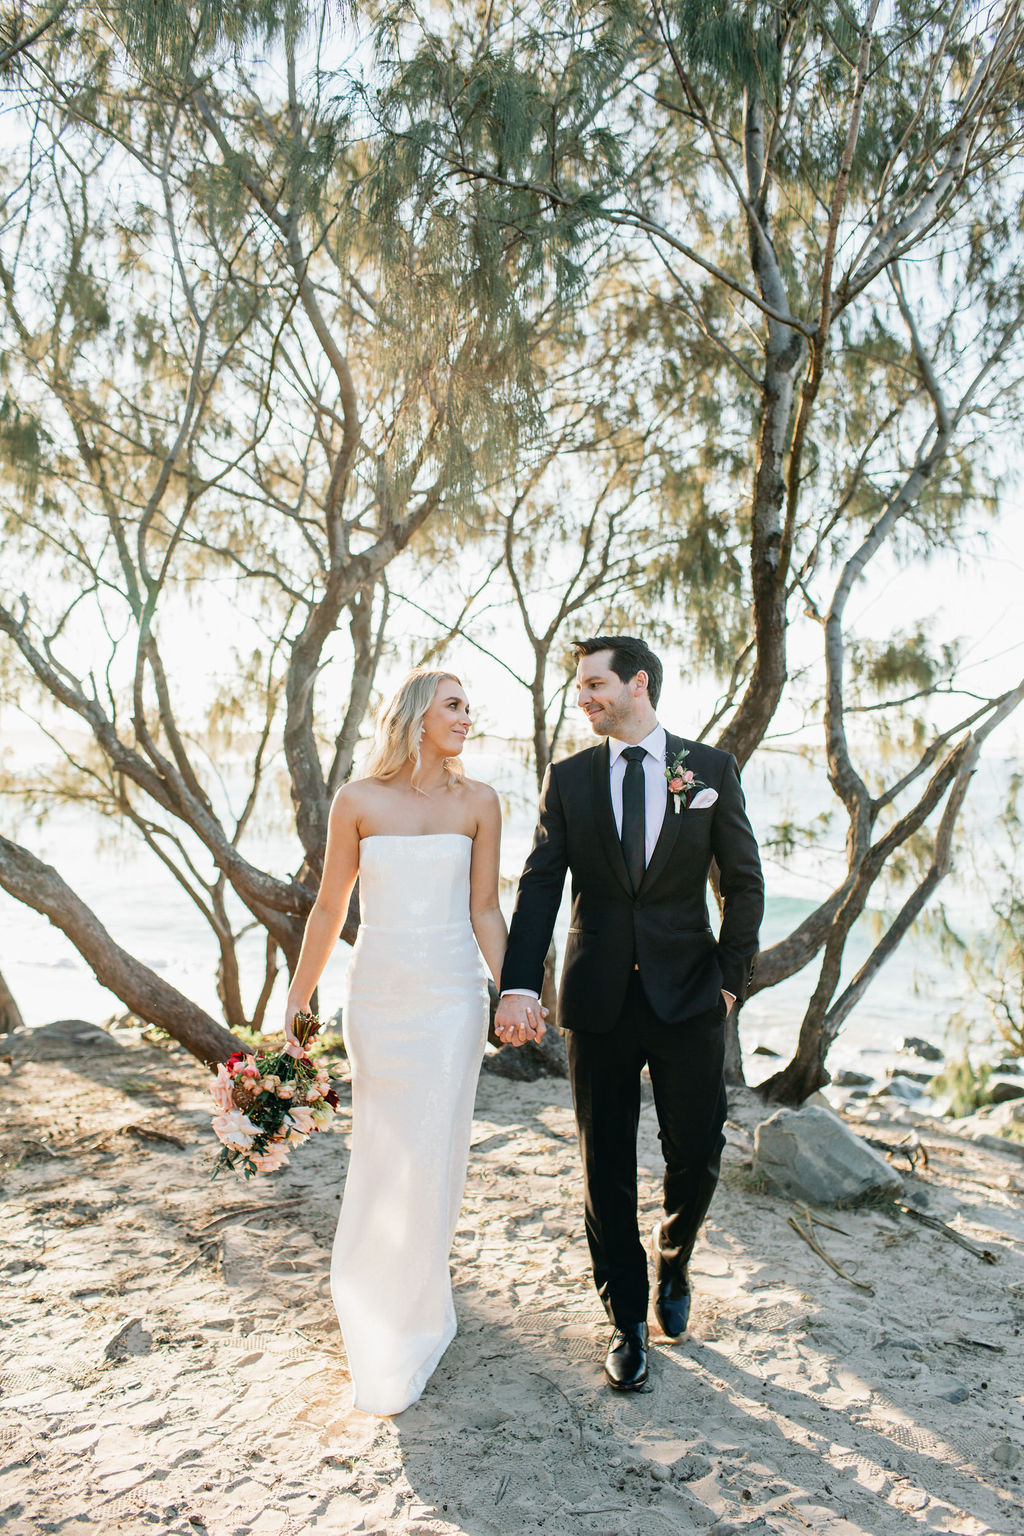 Real Wedding :: Maxine + Daniel, Osteria Tweed Coast Wedding Venue